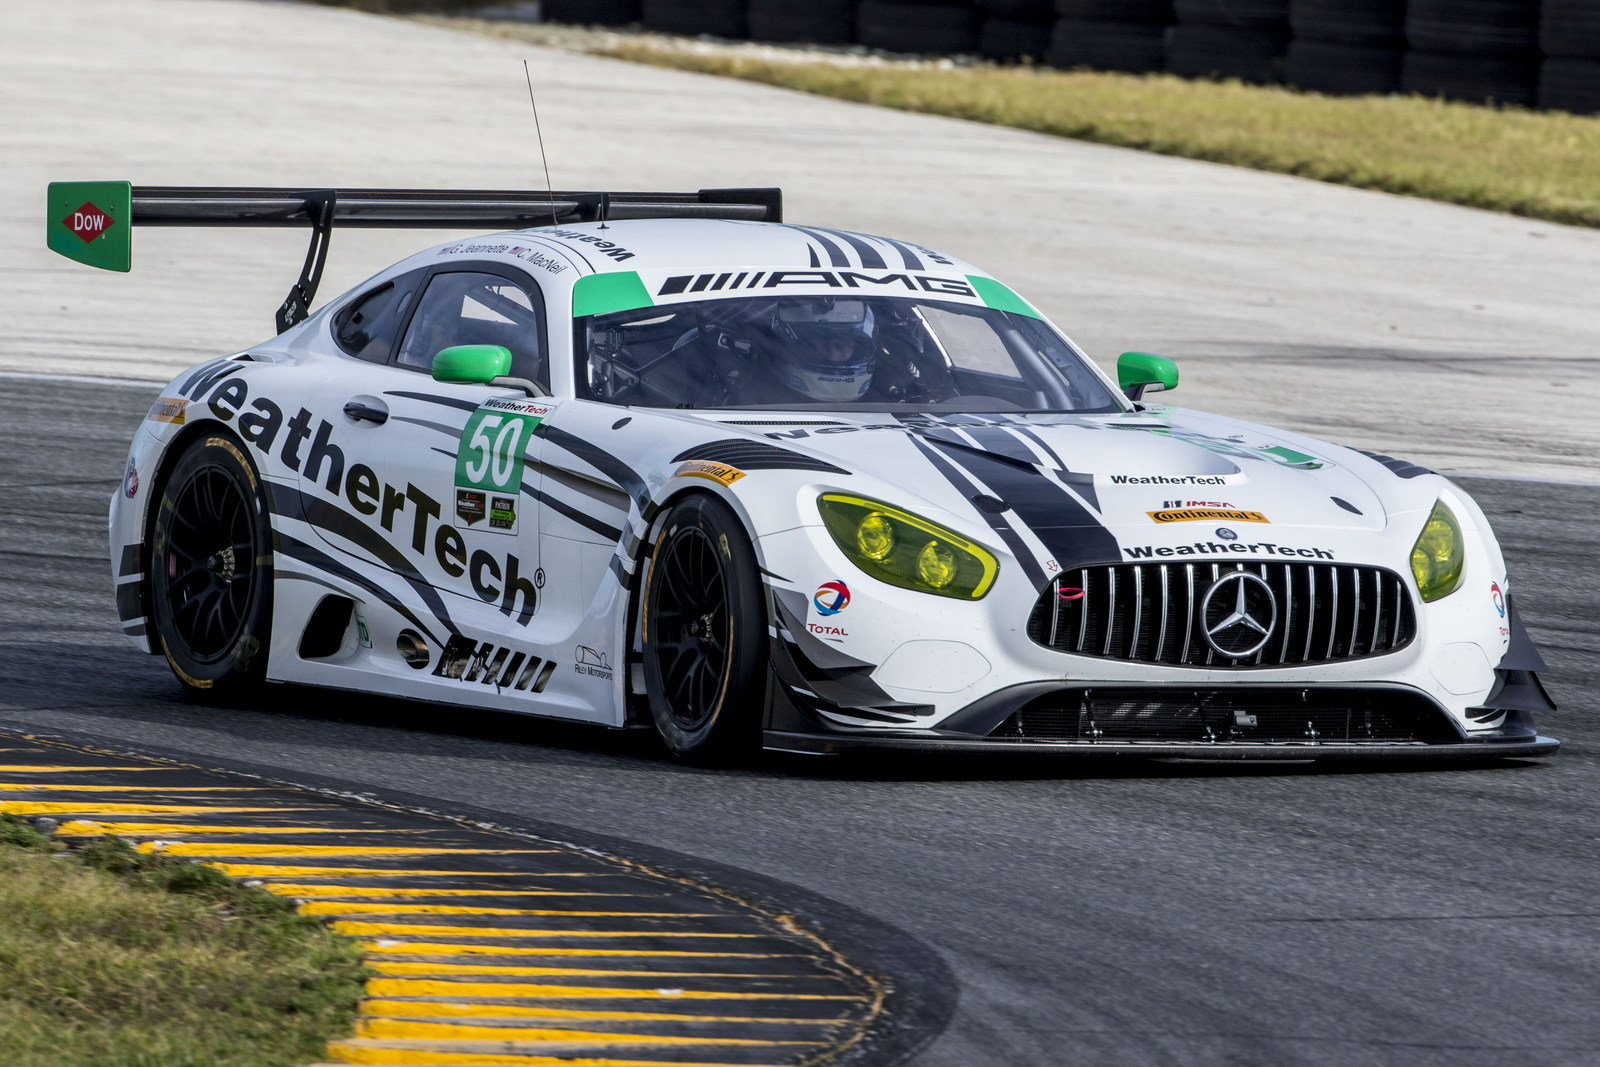 Mercedes amg joins imsa with amg gt3 race car picture for Mercedes benz race cars